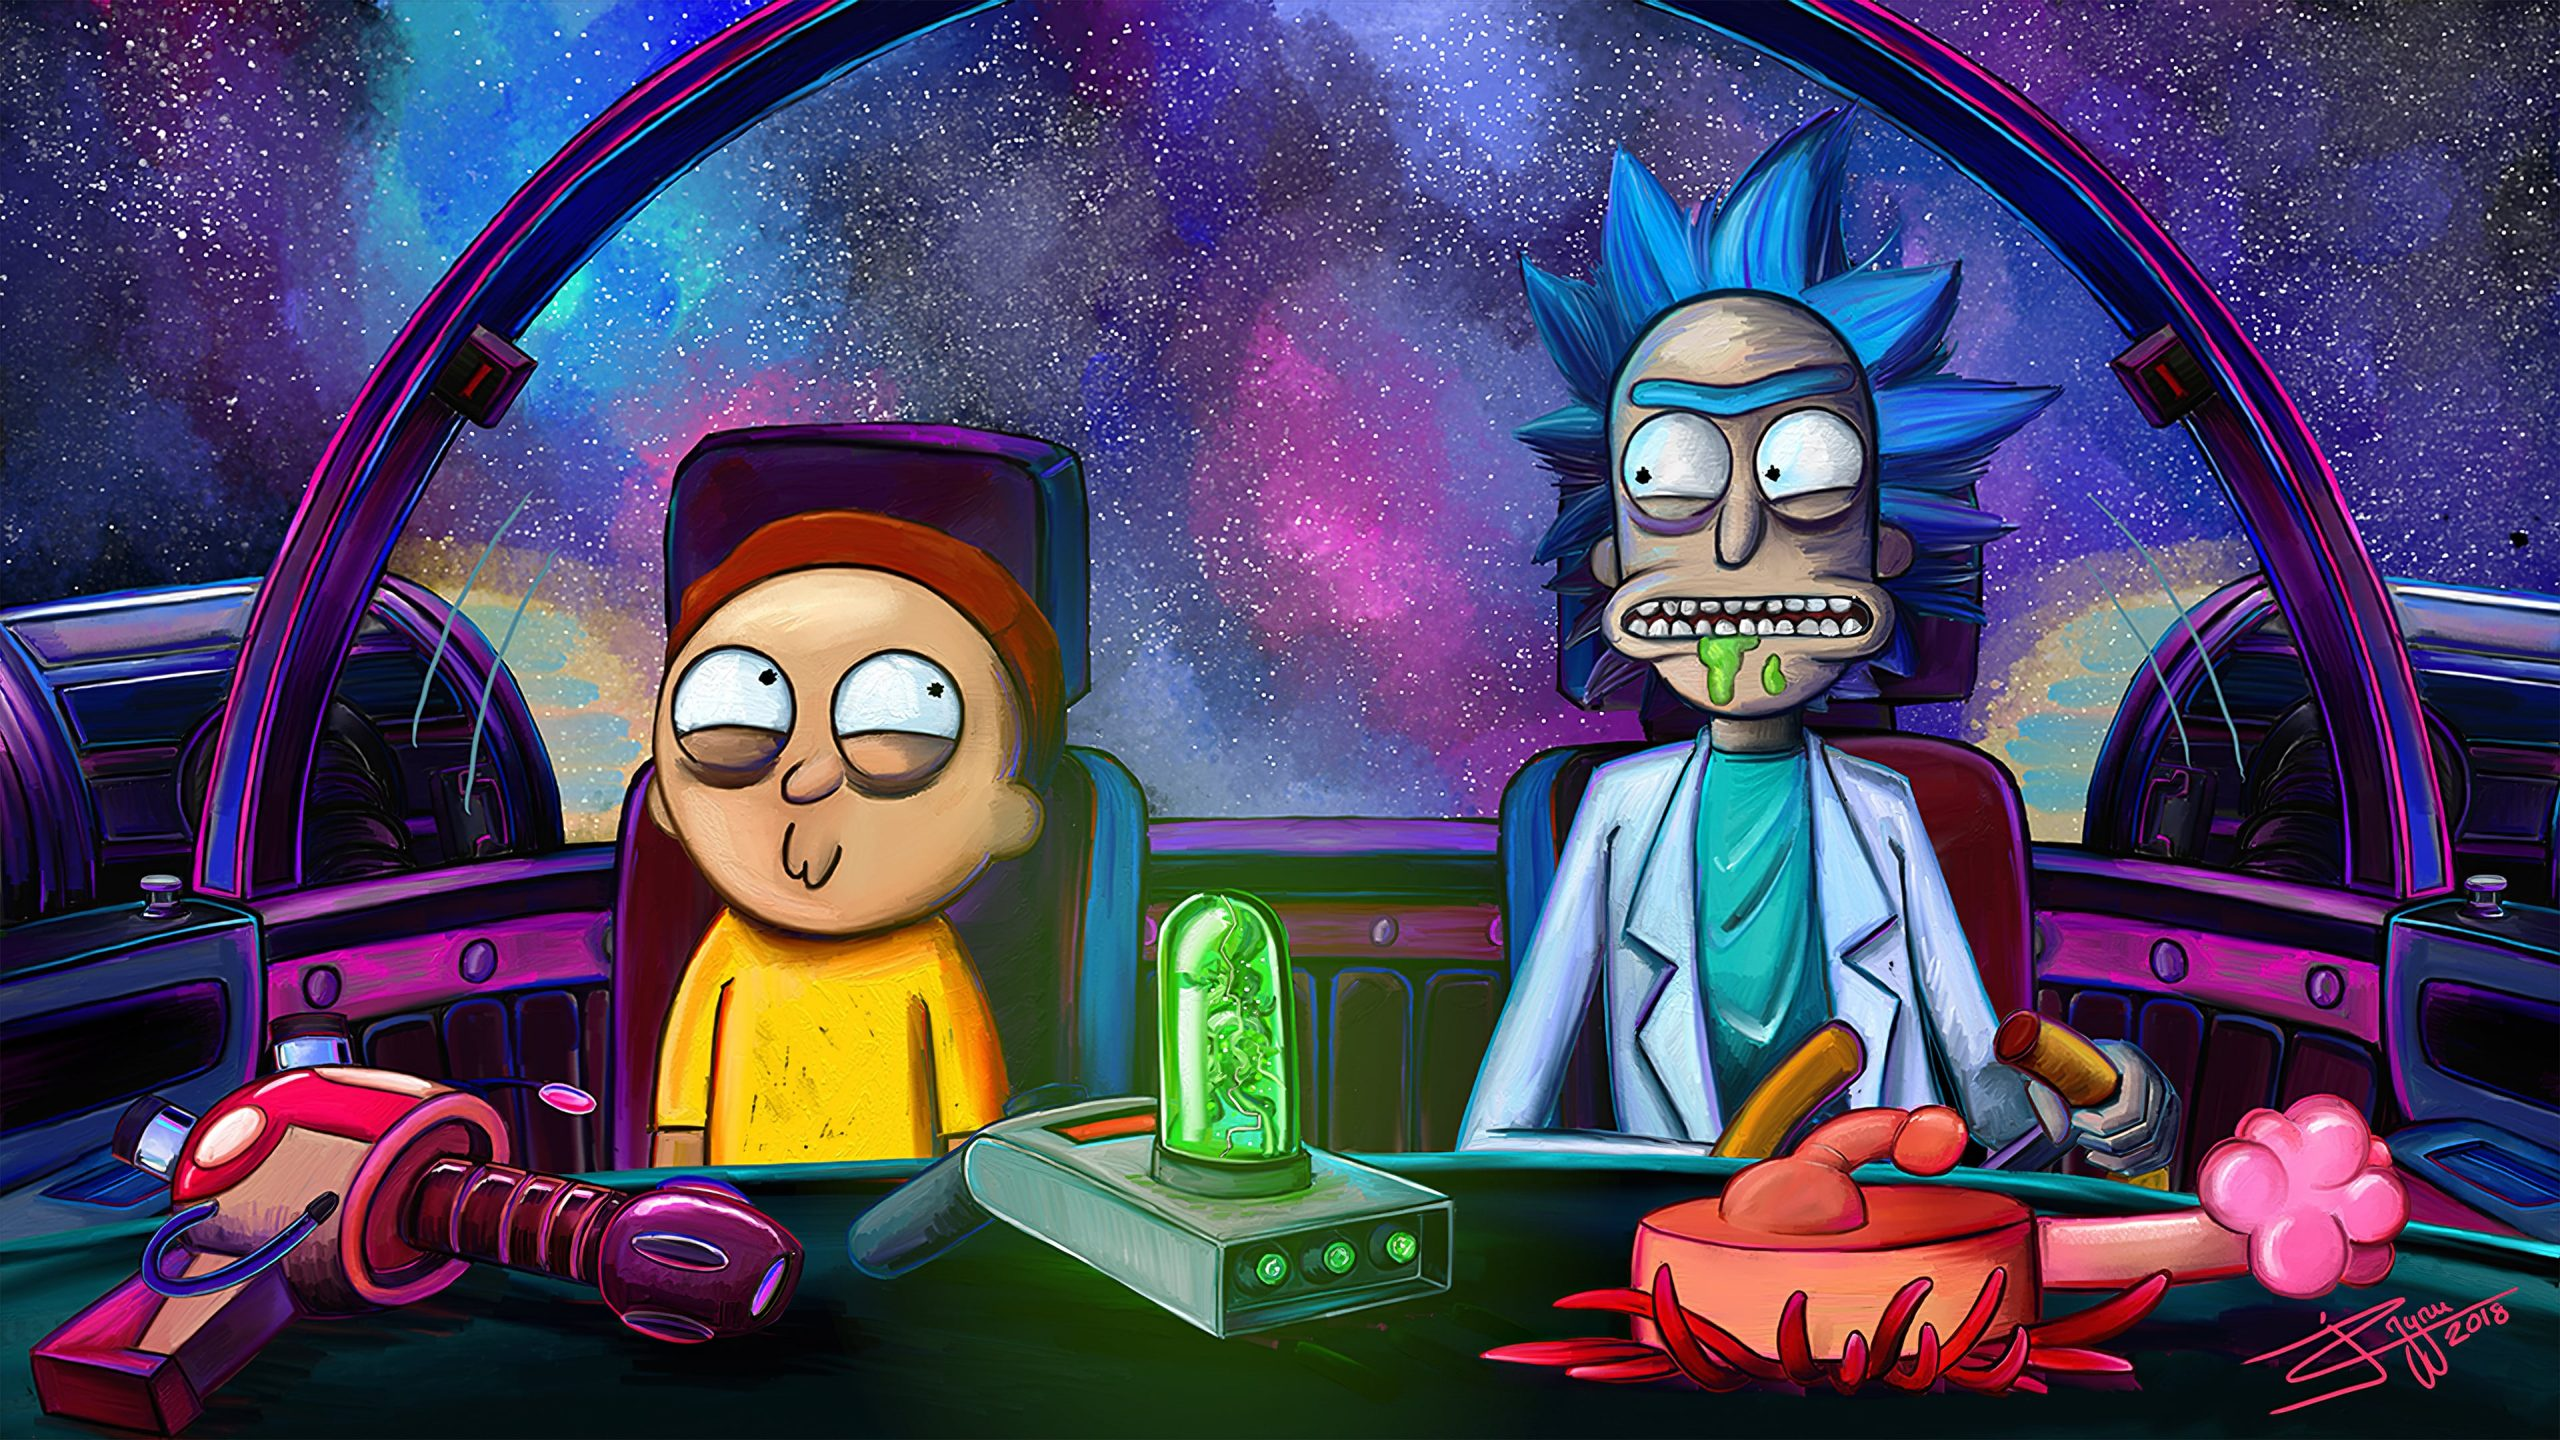 Rick and Morty Wallpaper